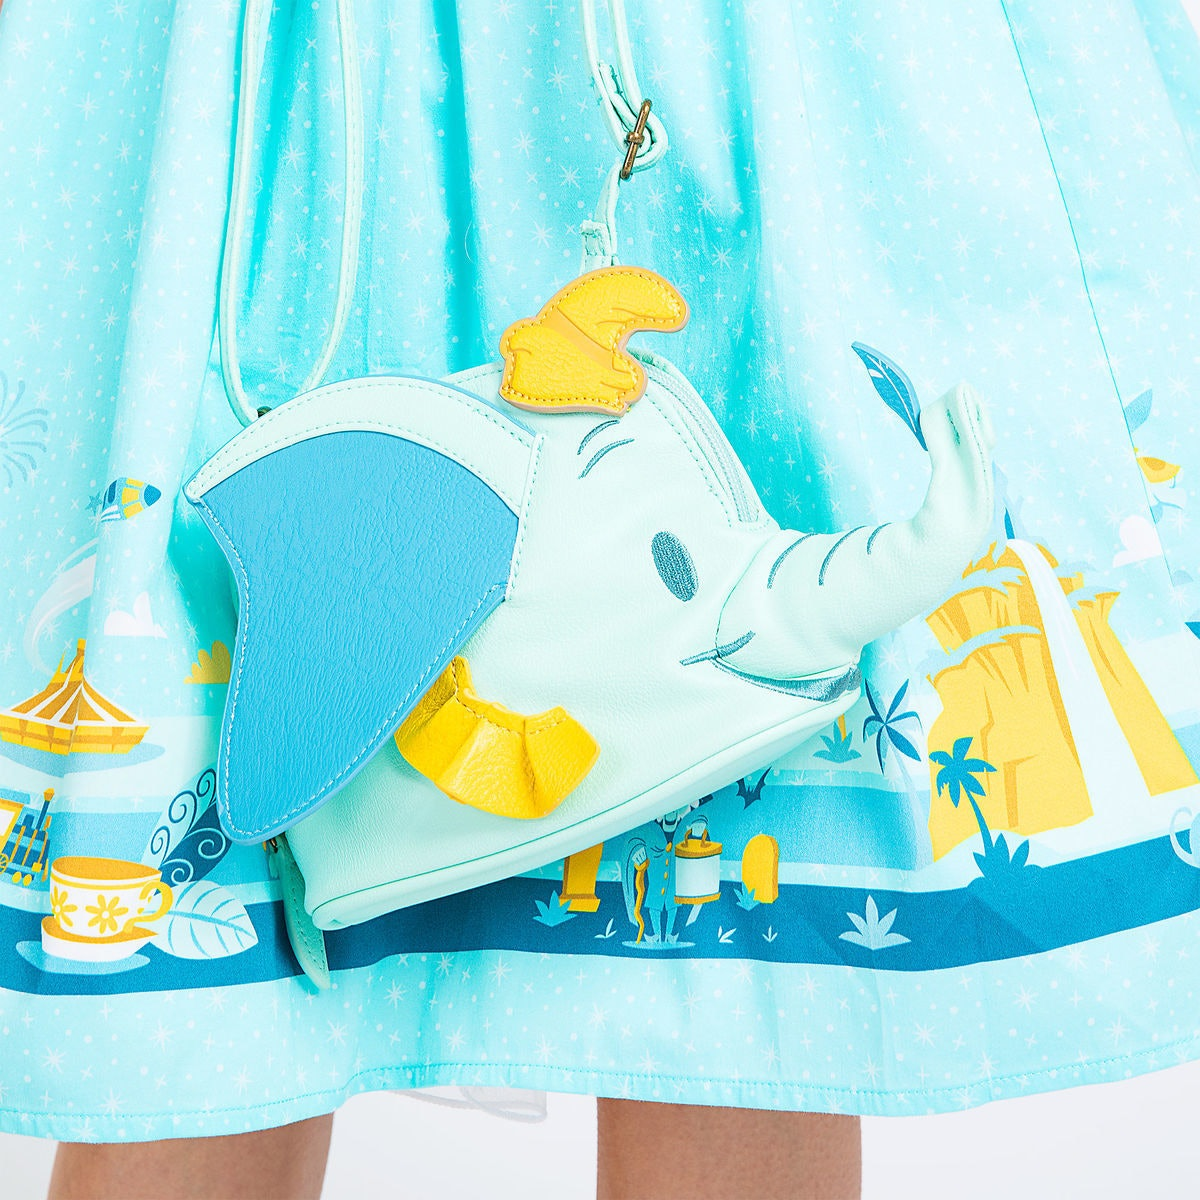 'Dumbo' Merchandise At shopDisney Just Arrived Ahead Of The Live-Action Film